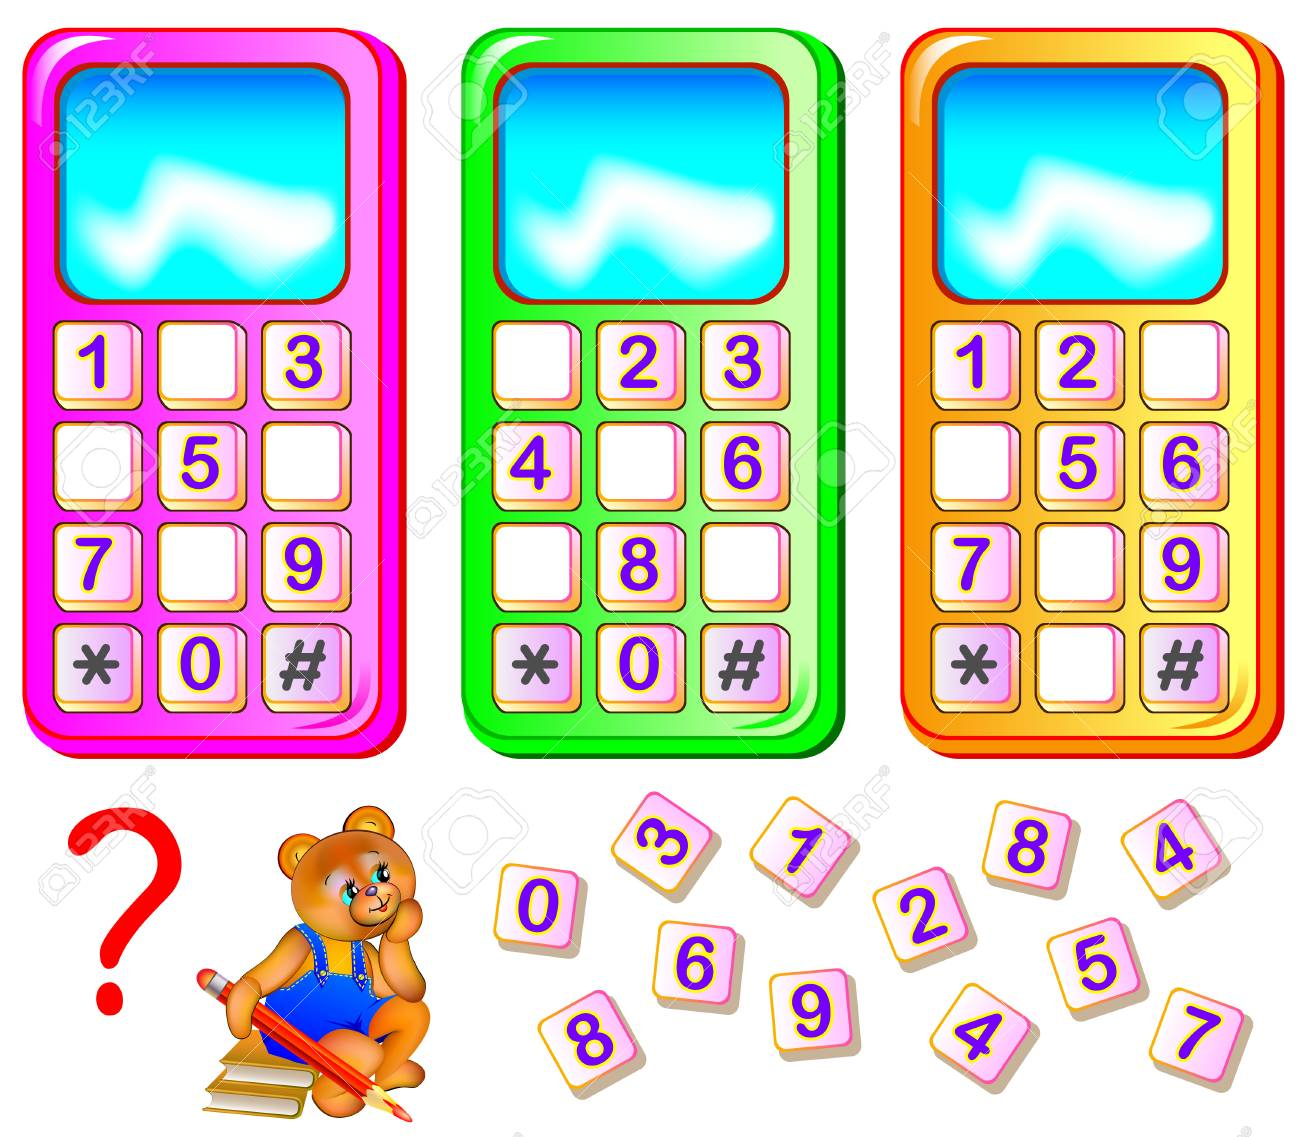 Worksheet for young children. Help the bear to repair mobile phones. Find the missing numbers and write them on the correct places. Logic puzzle game. - 89088976